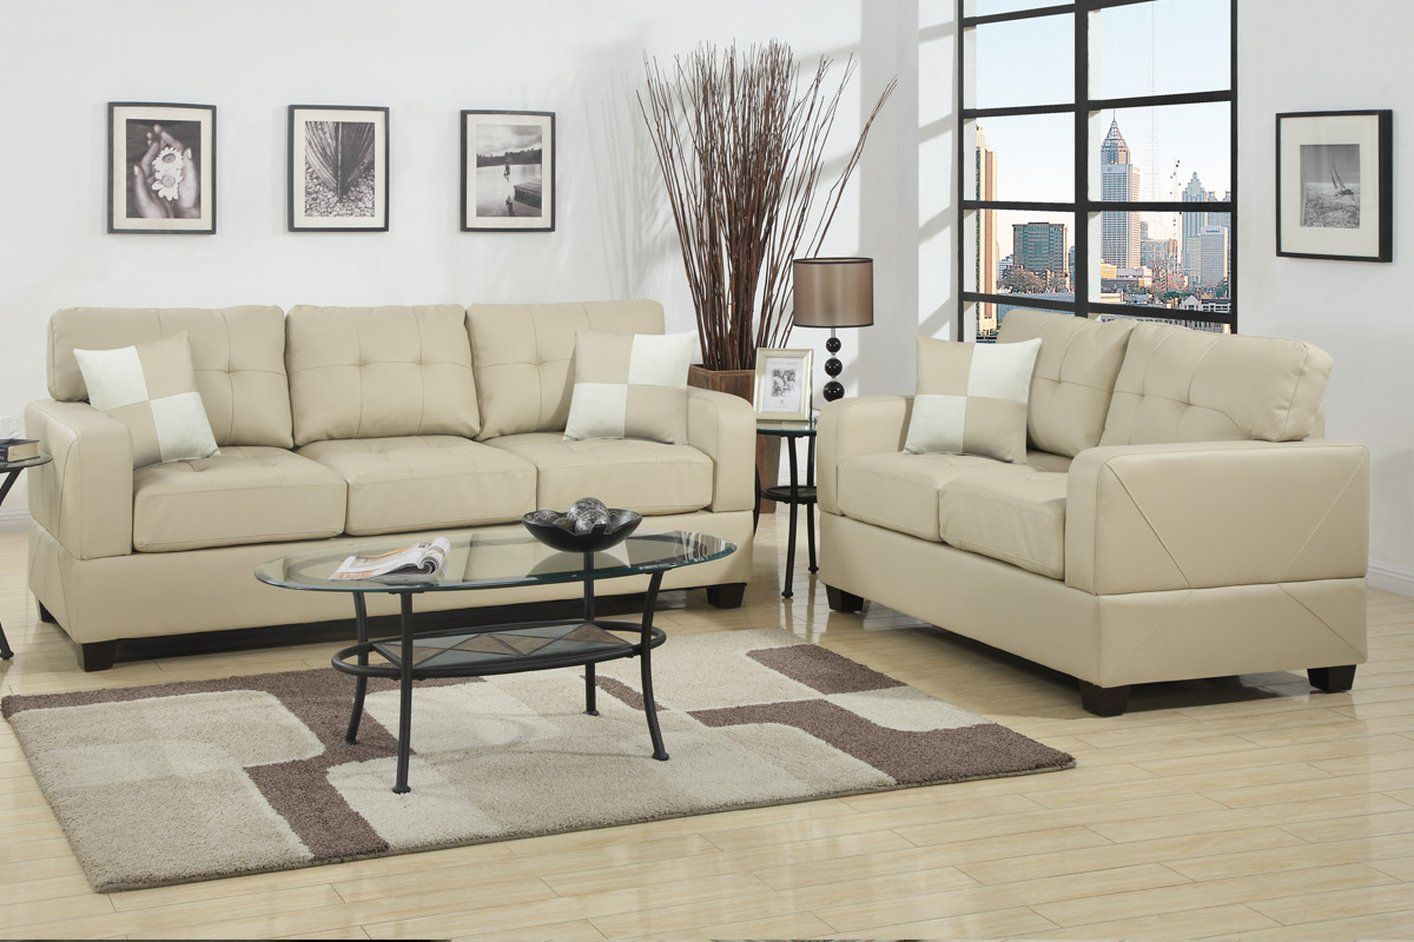 Charming Sofa And Loveseat Picture With Formal Living Room And ...